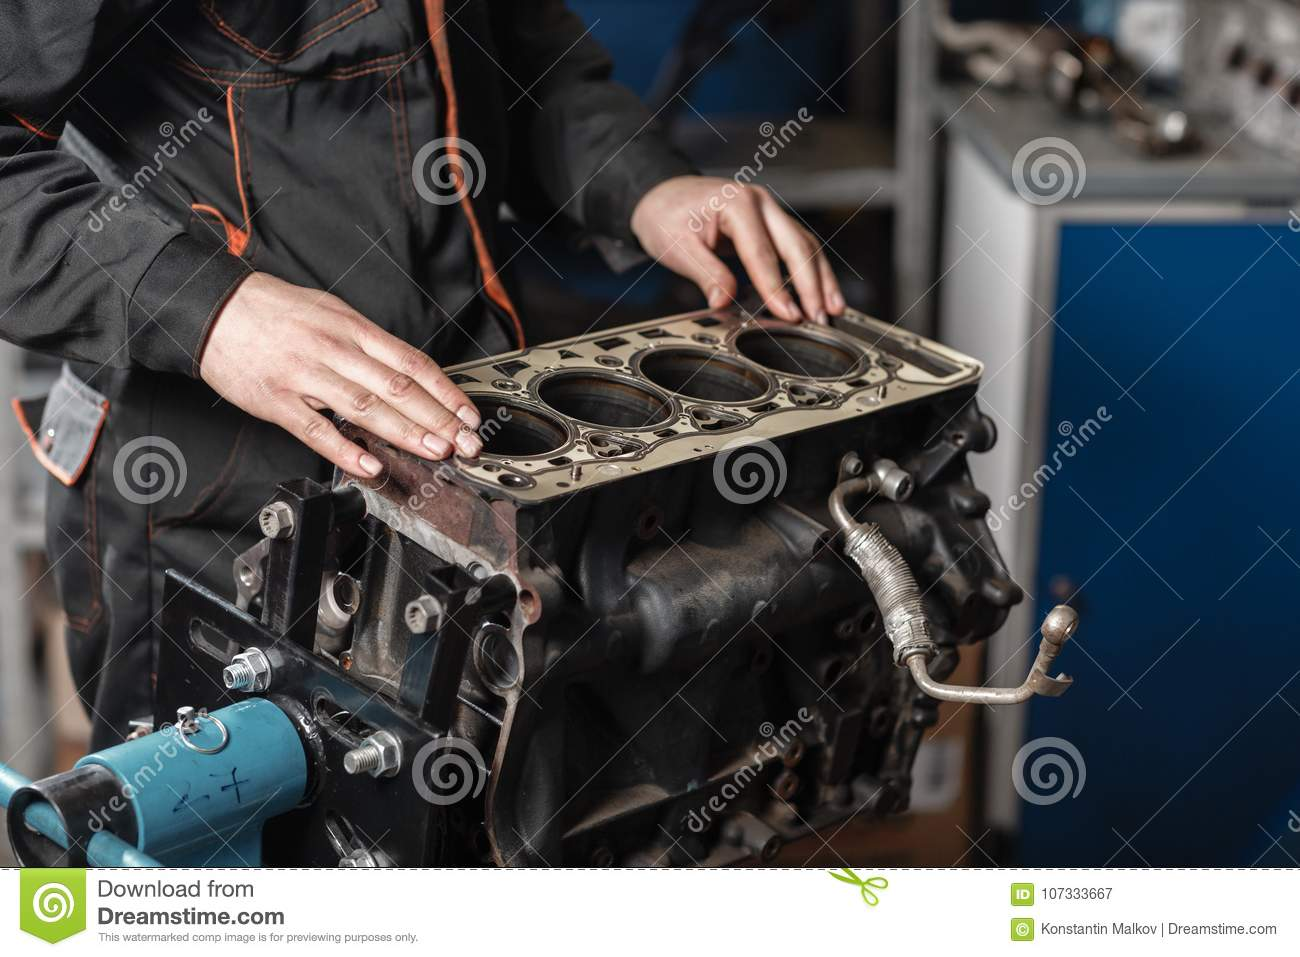 hight resolution of the mechanic disassemble block engine vehicle engine on a repair stand with piston and connecting